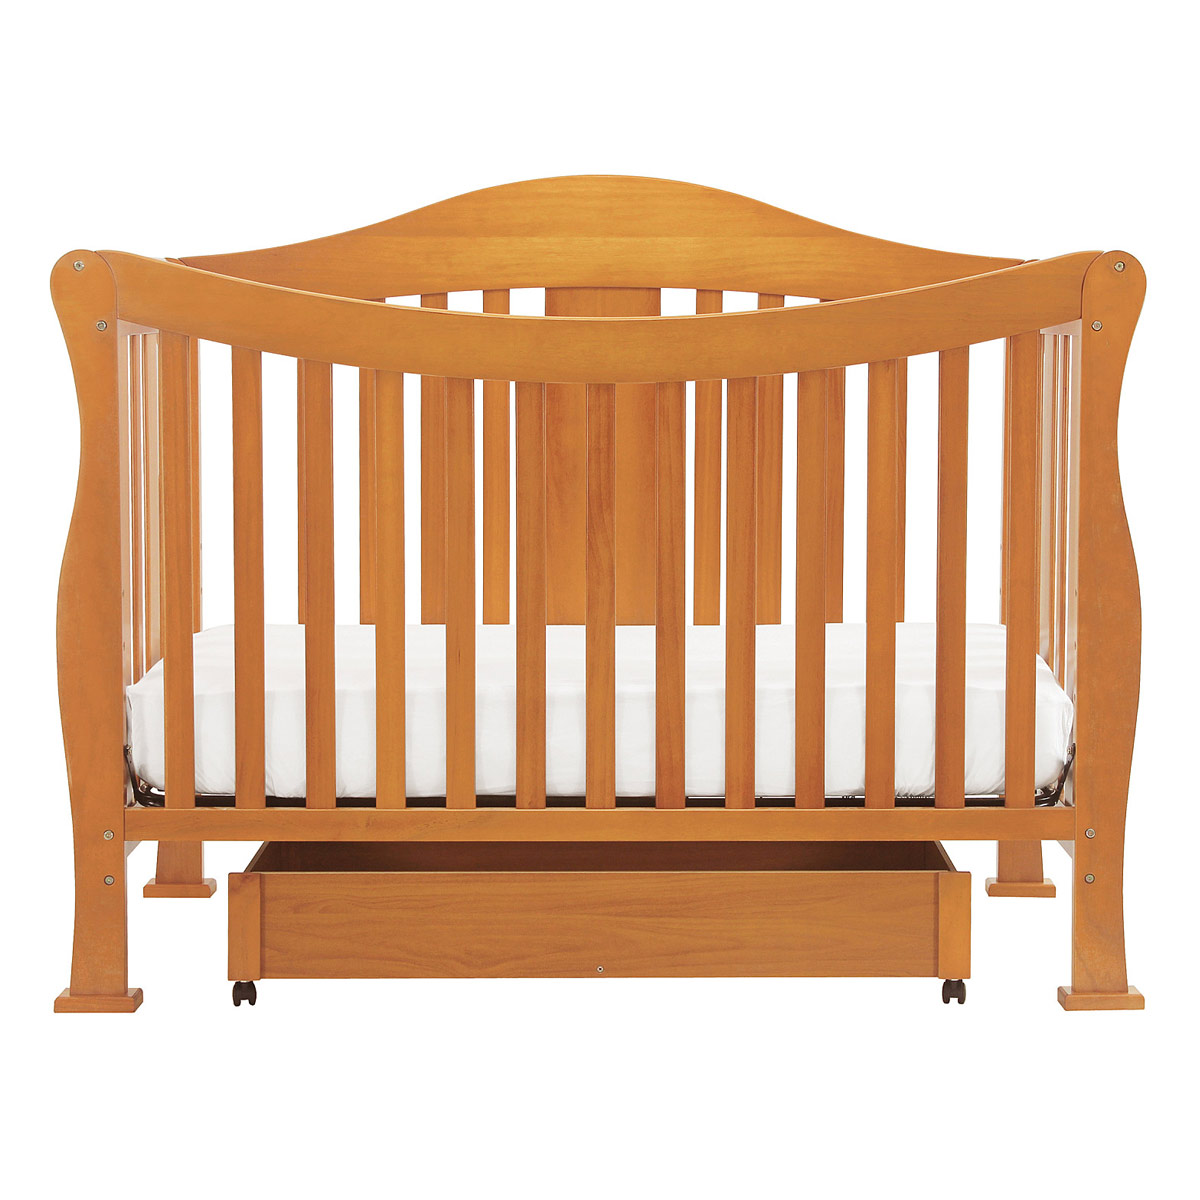 davinci parker 4 in 1 convertible crib in oak k5101o free shipping rh simplybabyfurniture com Parker Coffee DaVinci DaVinci Parker Crib Oak